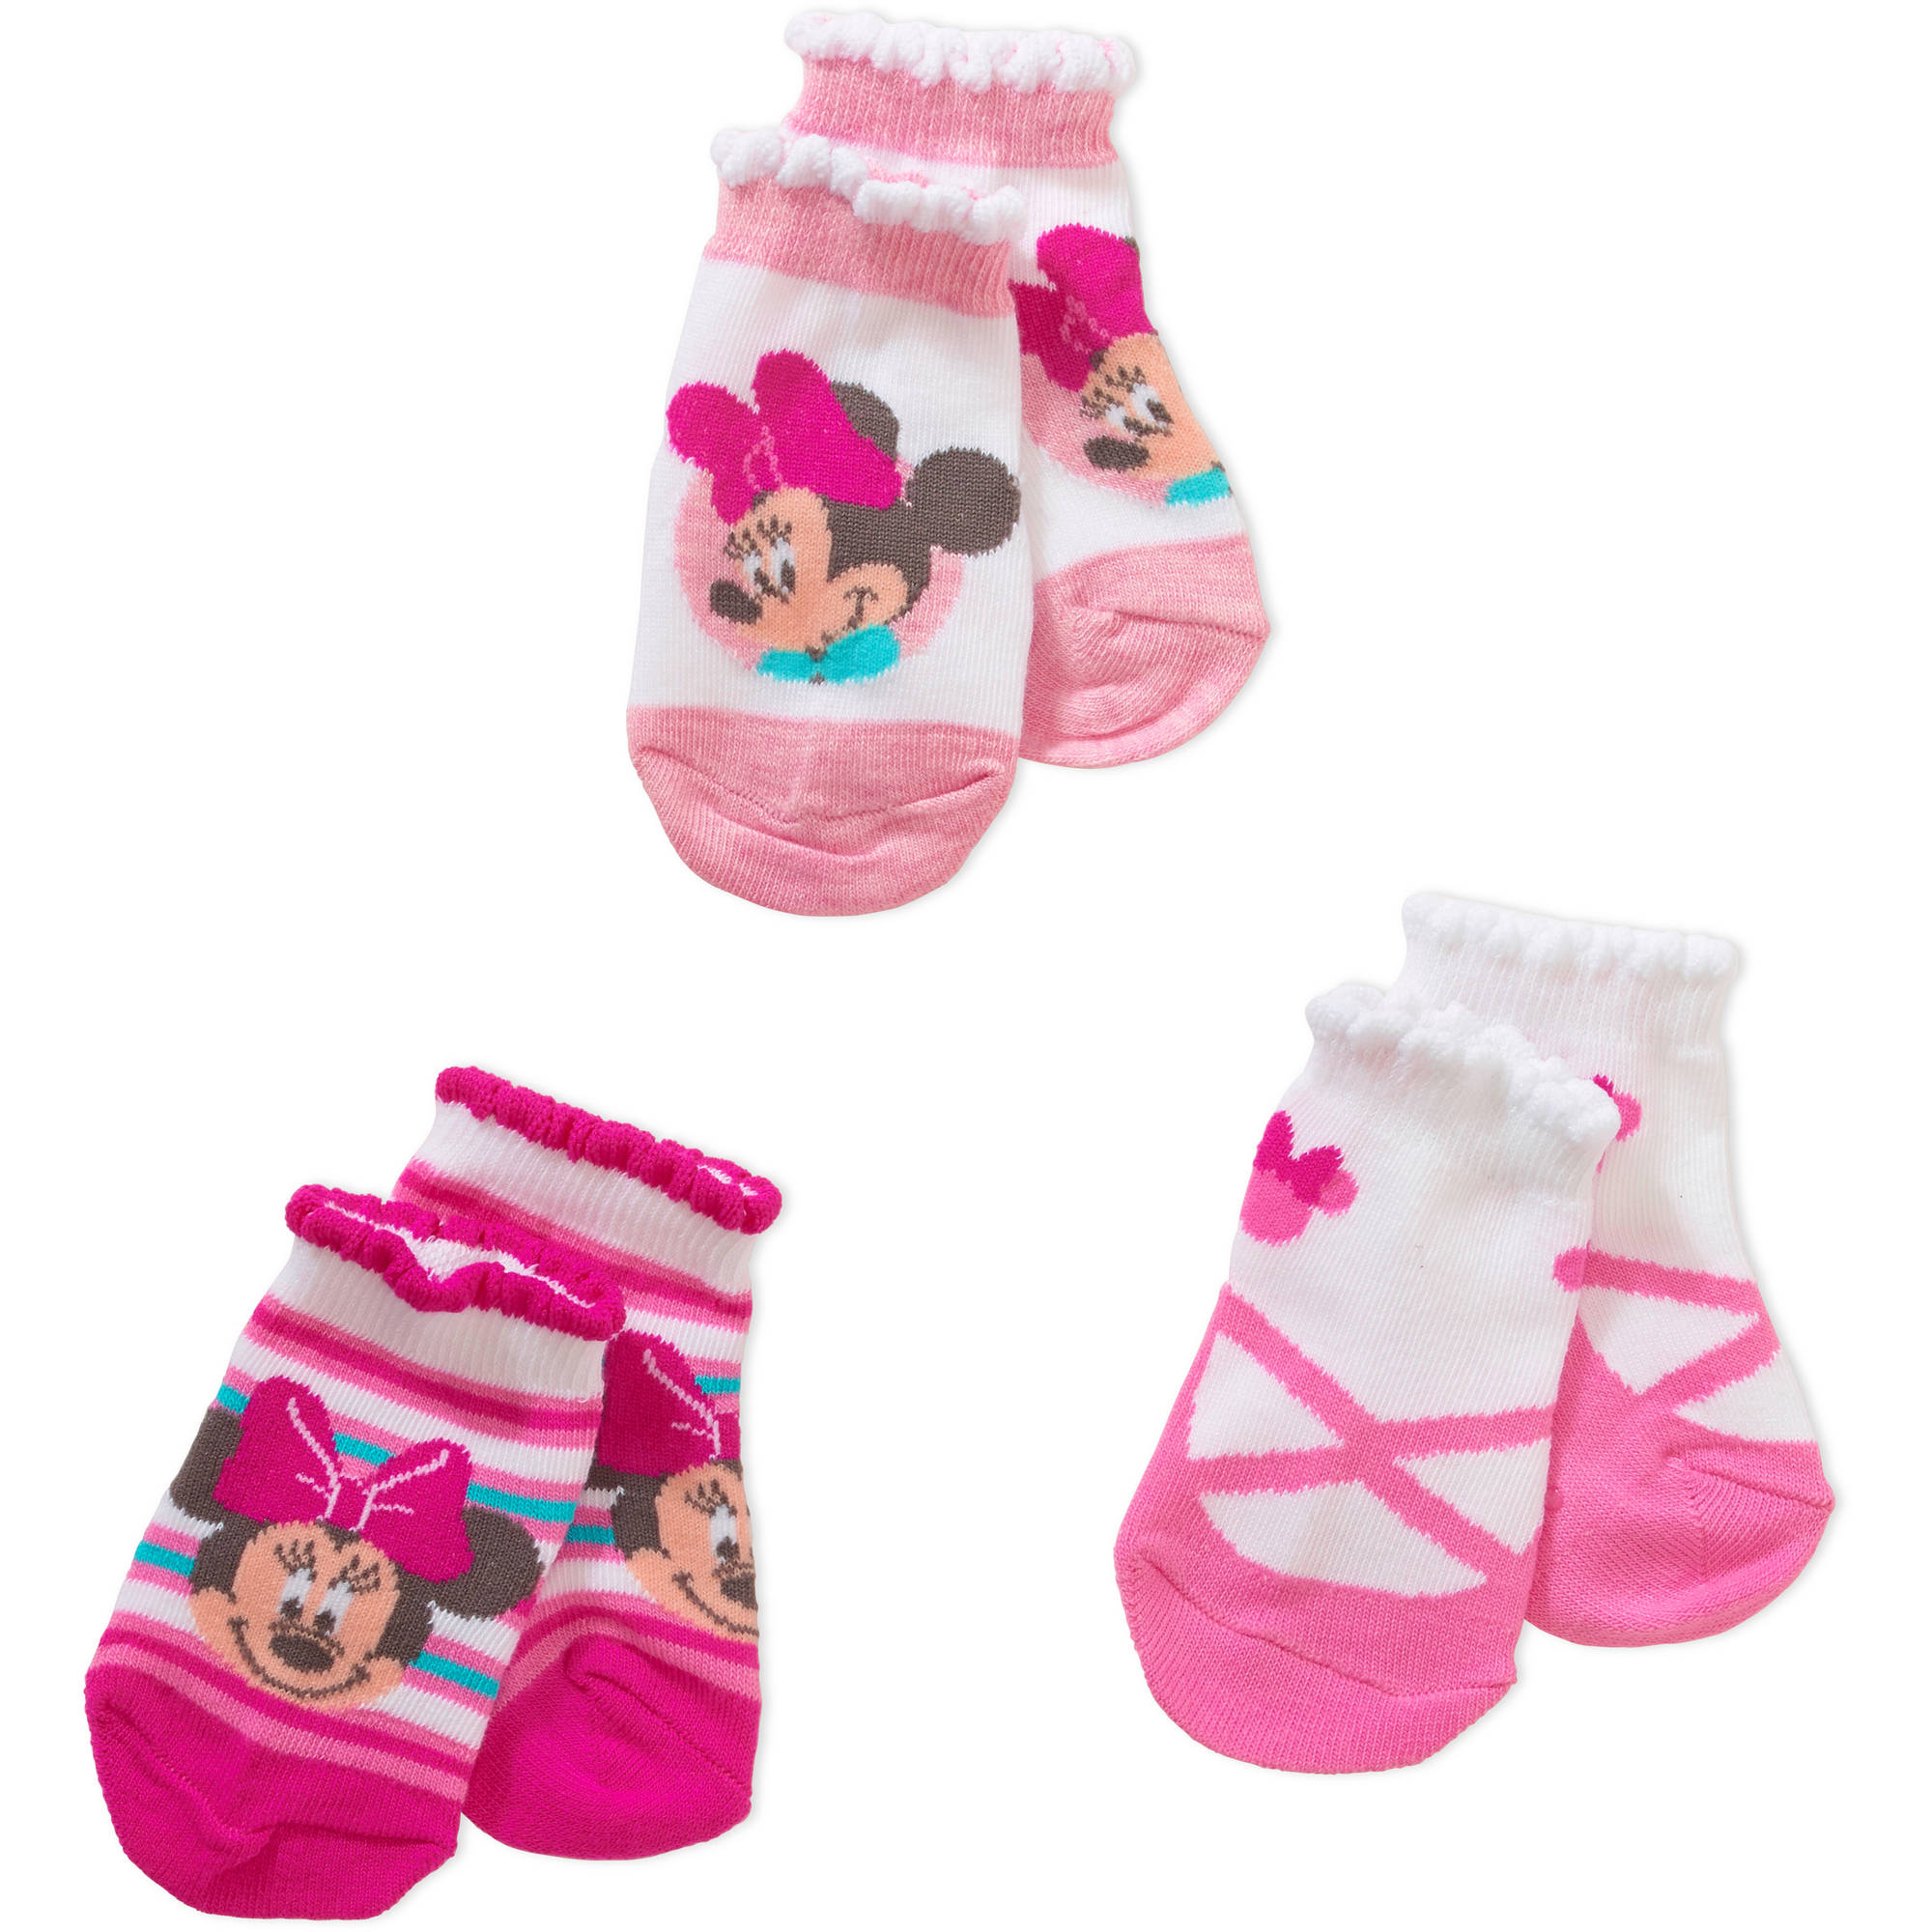 Minnie Mouse Baby & Toddler Socks & Booties